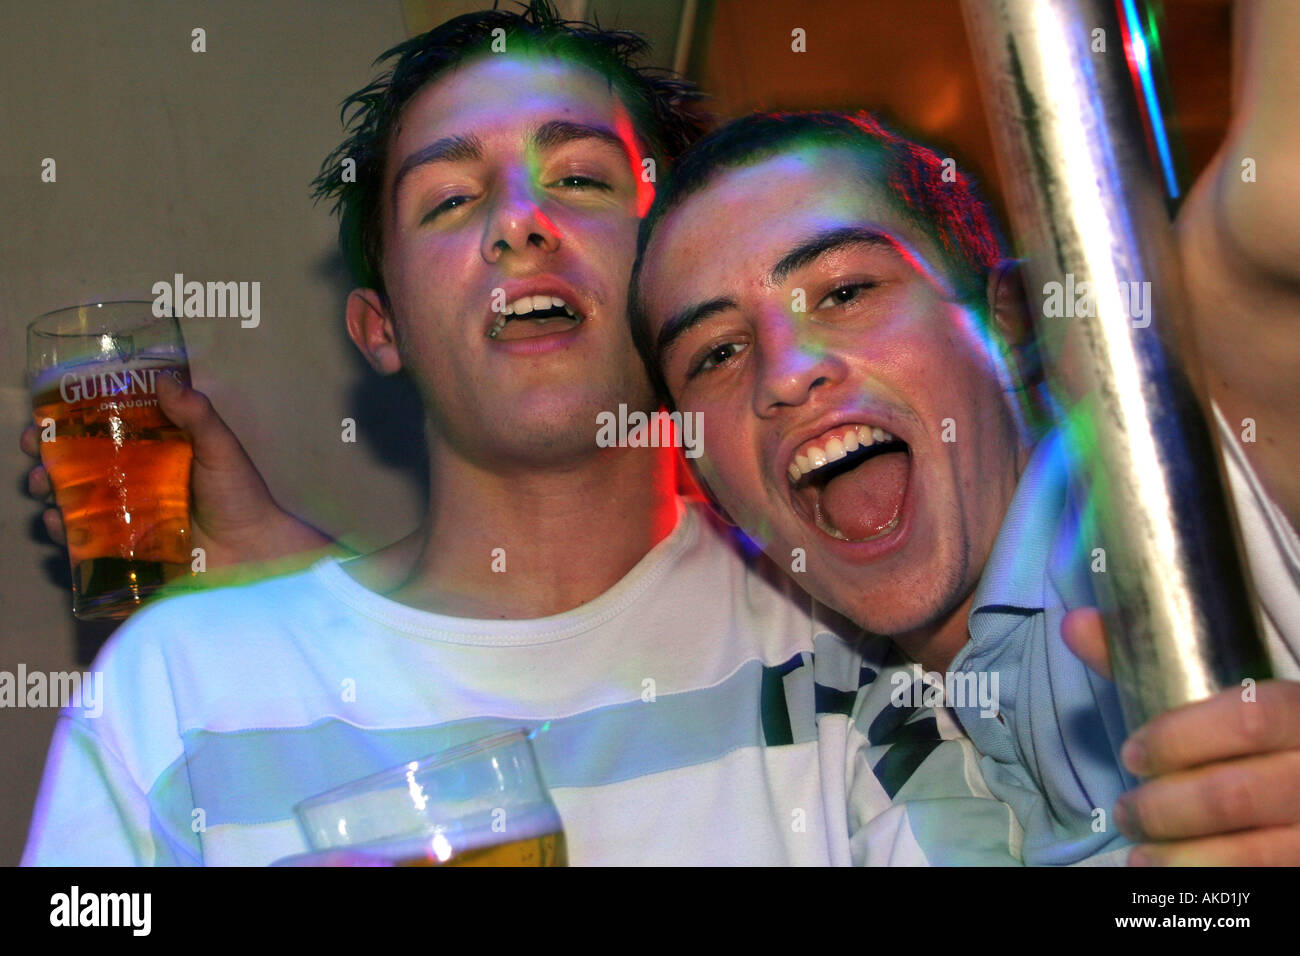 binge drinking pub culture - Stock Image